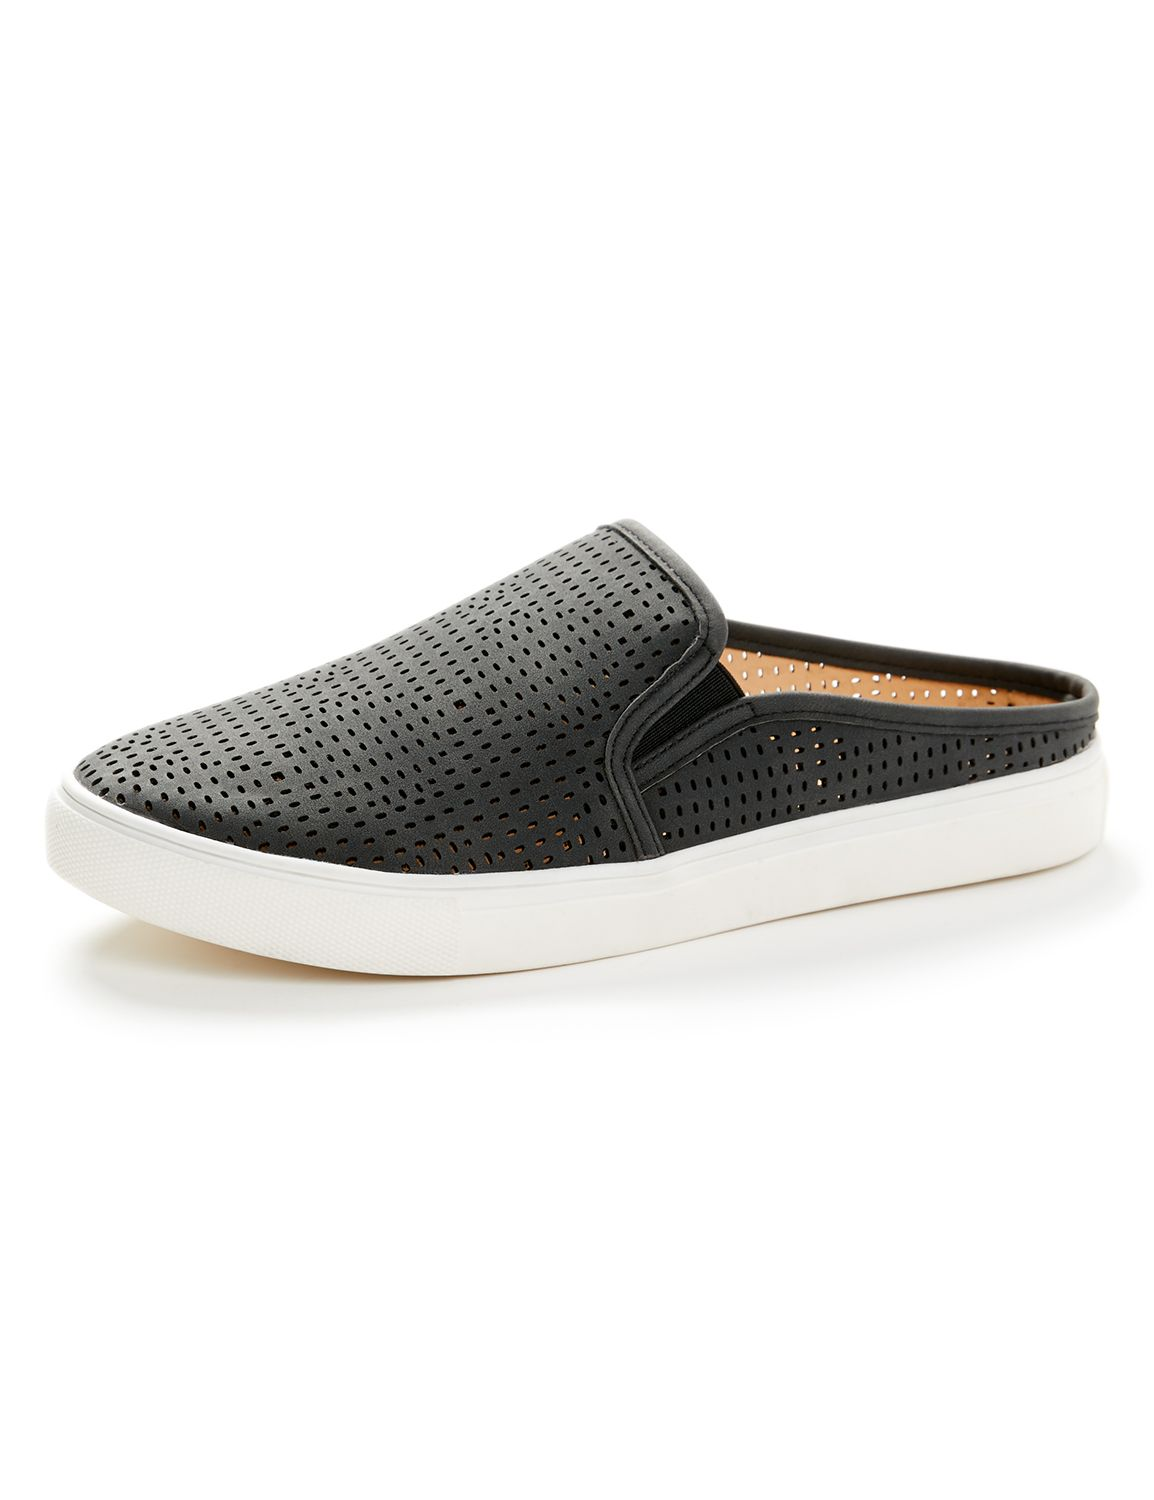 Good Soles Slip-On Sneaker Perf Slip On Sneaker M24813 MP-300097769